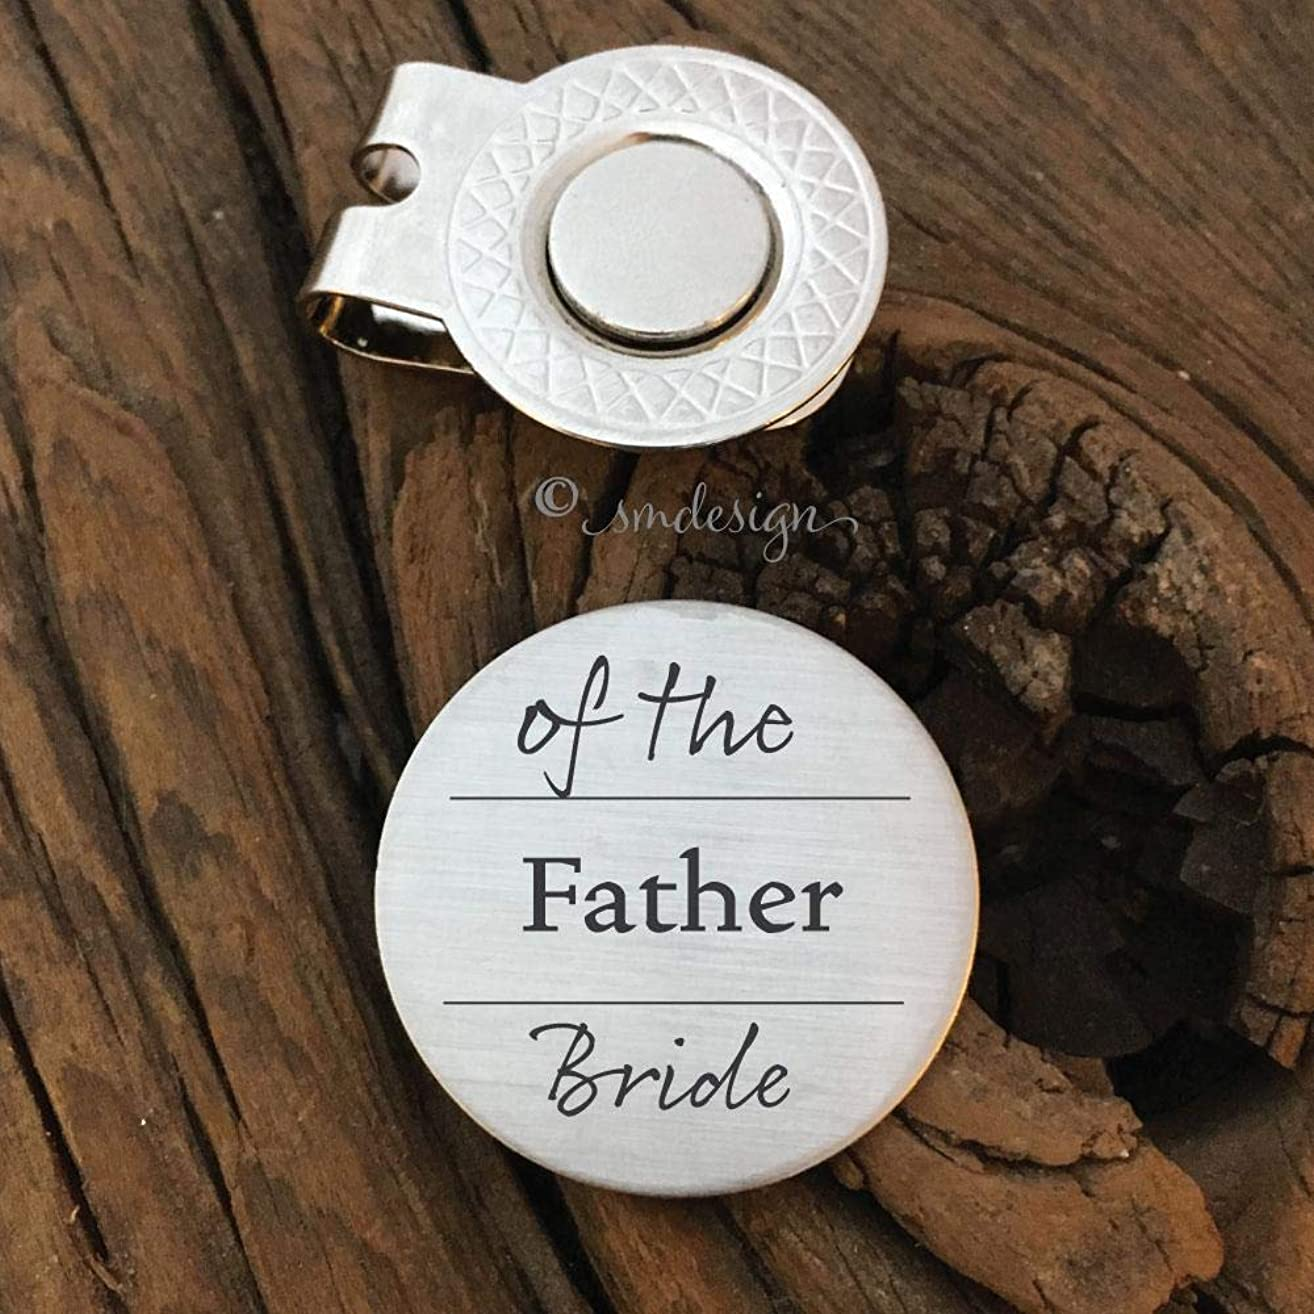 Father Of the Bride Golf Ball Marker- Dad Gift Father of the Bride Gift Golf Marker Wedding Gift Bride Dad Gift Parent Wedding Day Gift